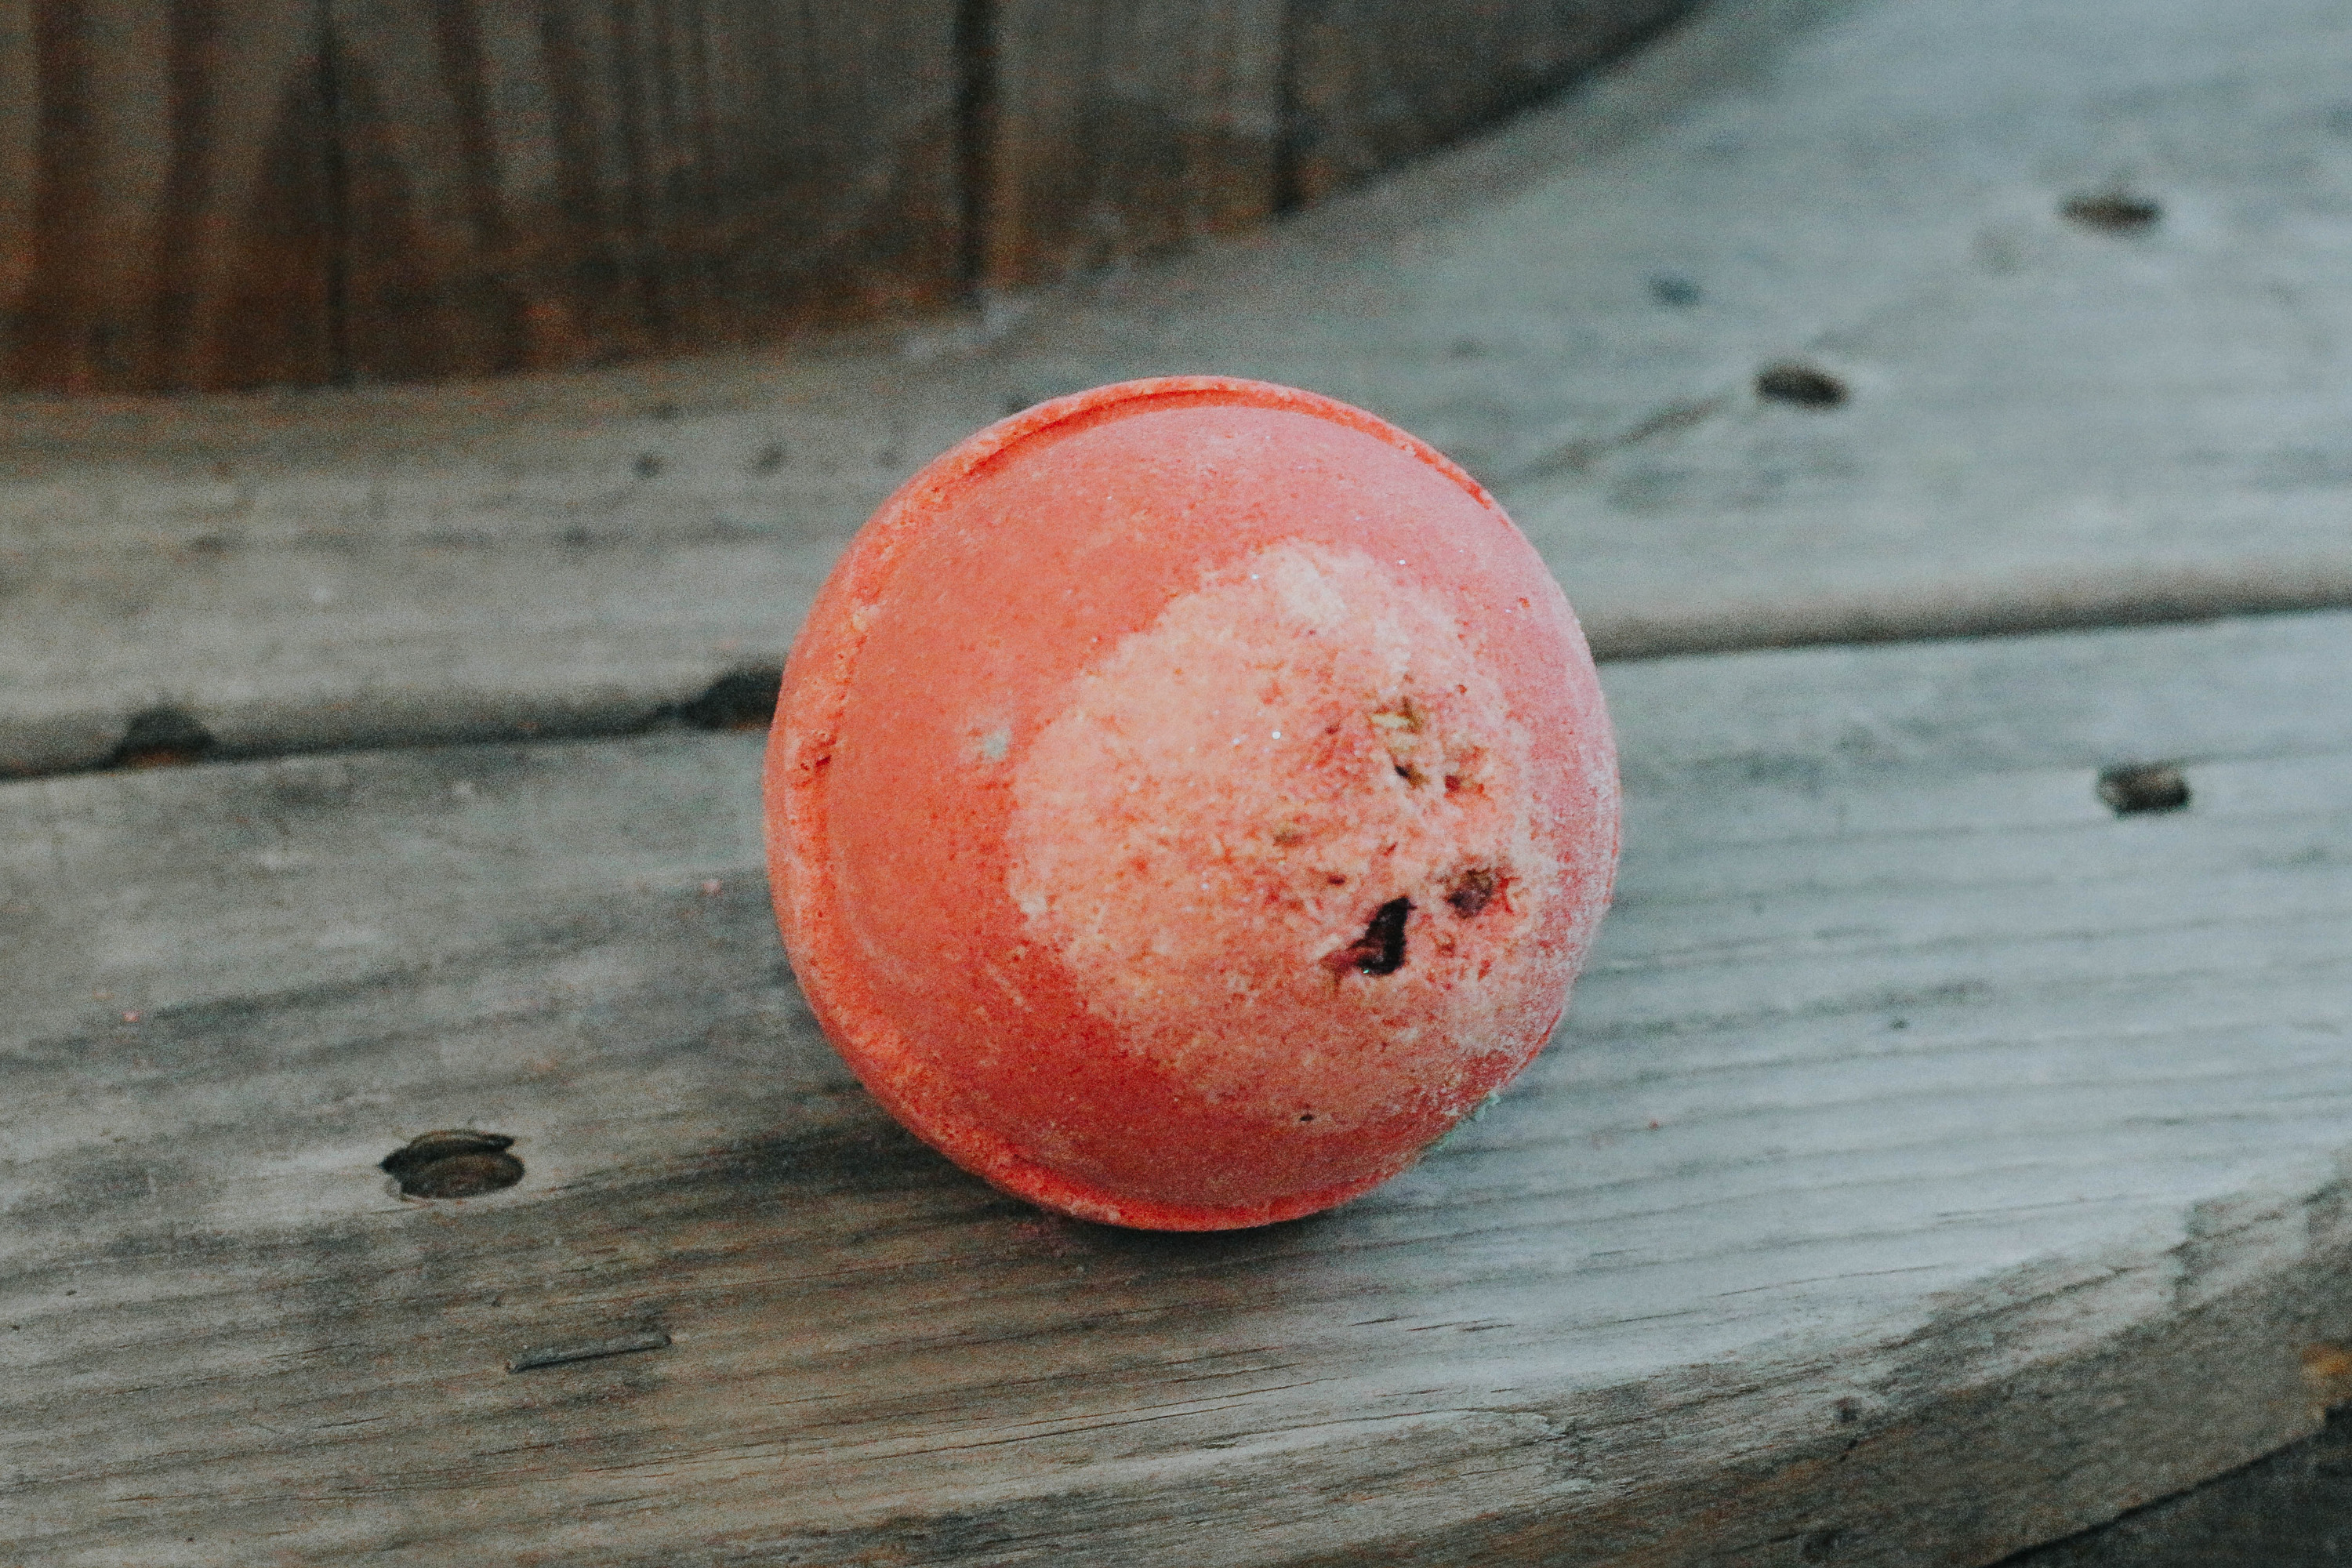 omens-bath-bomb-spa-lush-products-bath bombs-fizzies